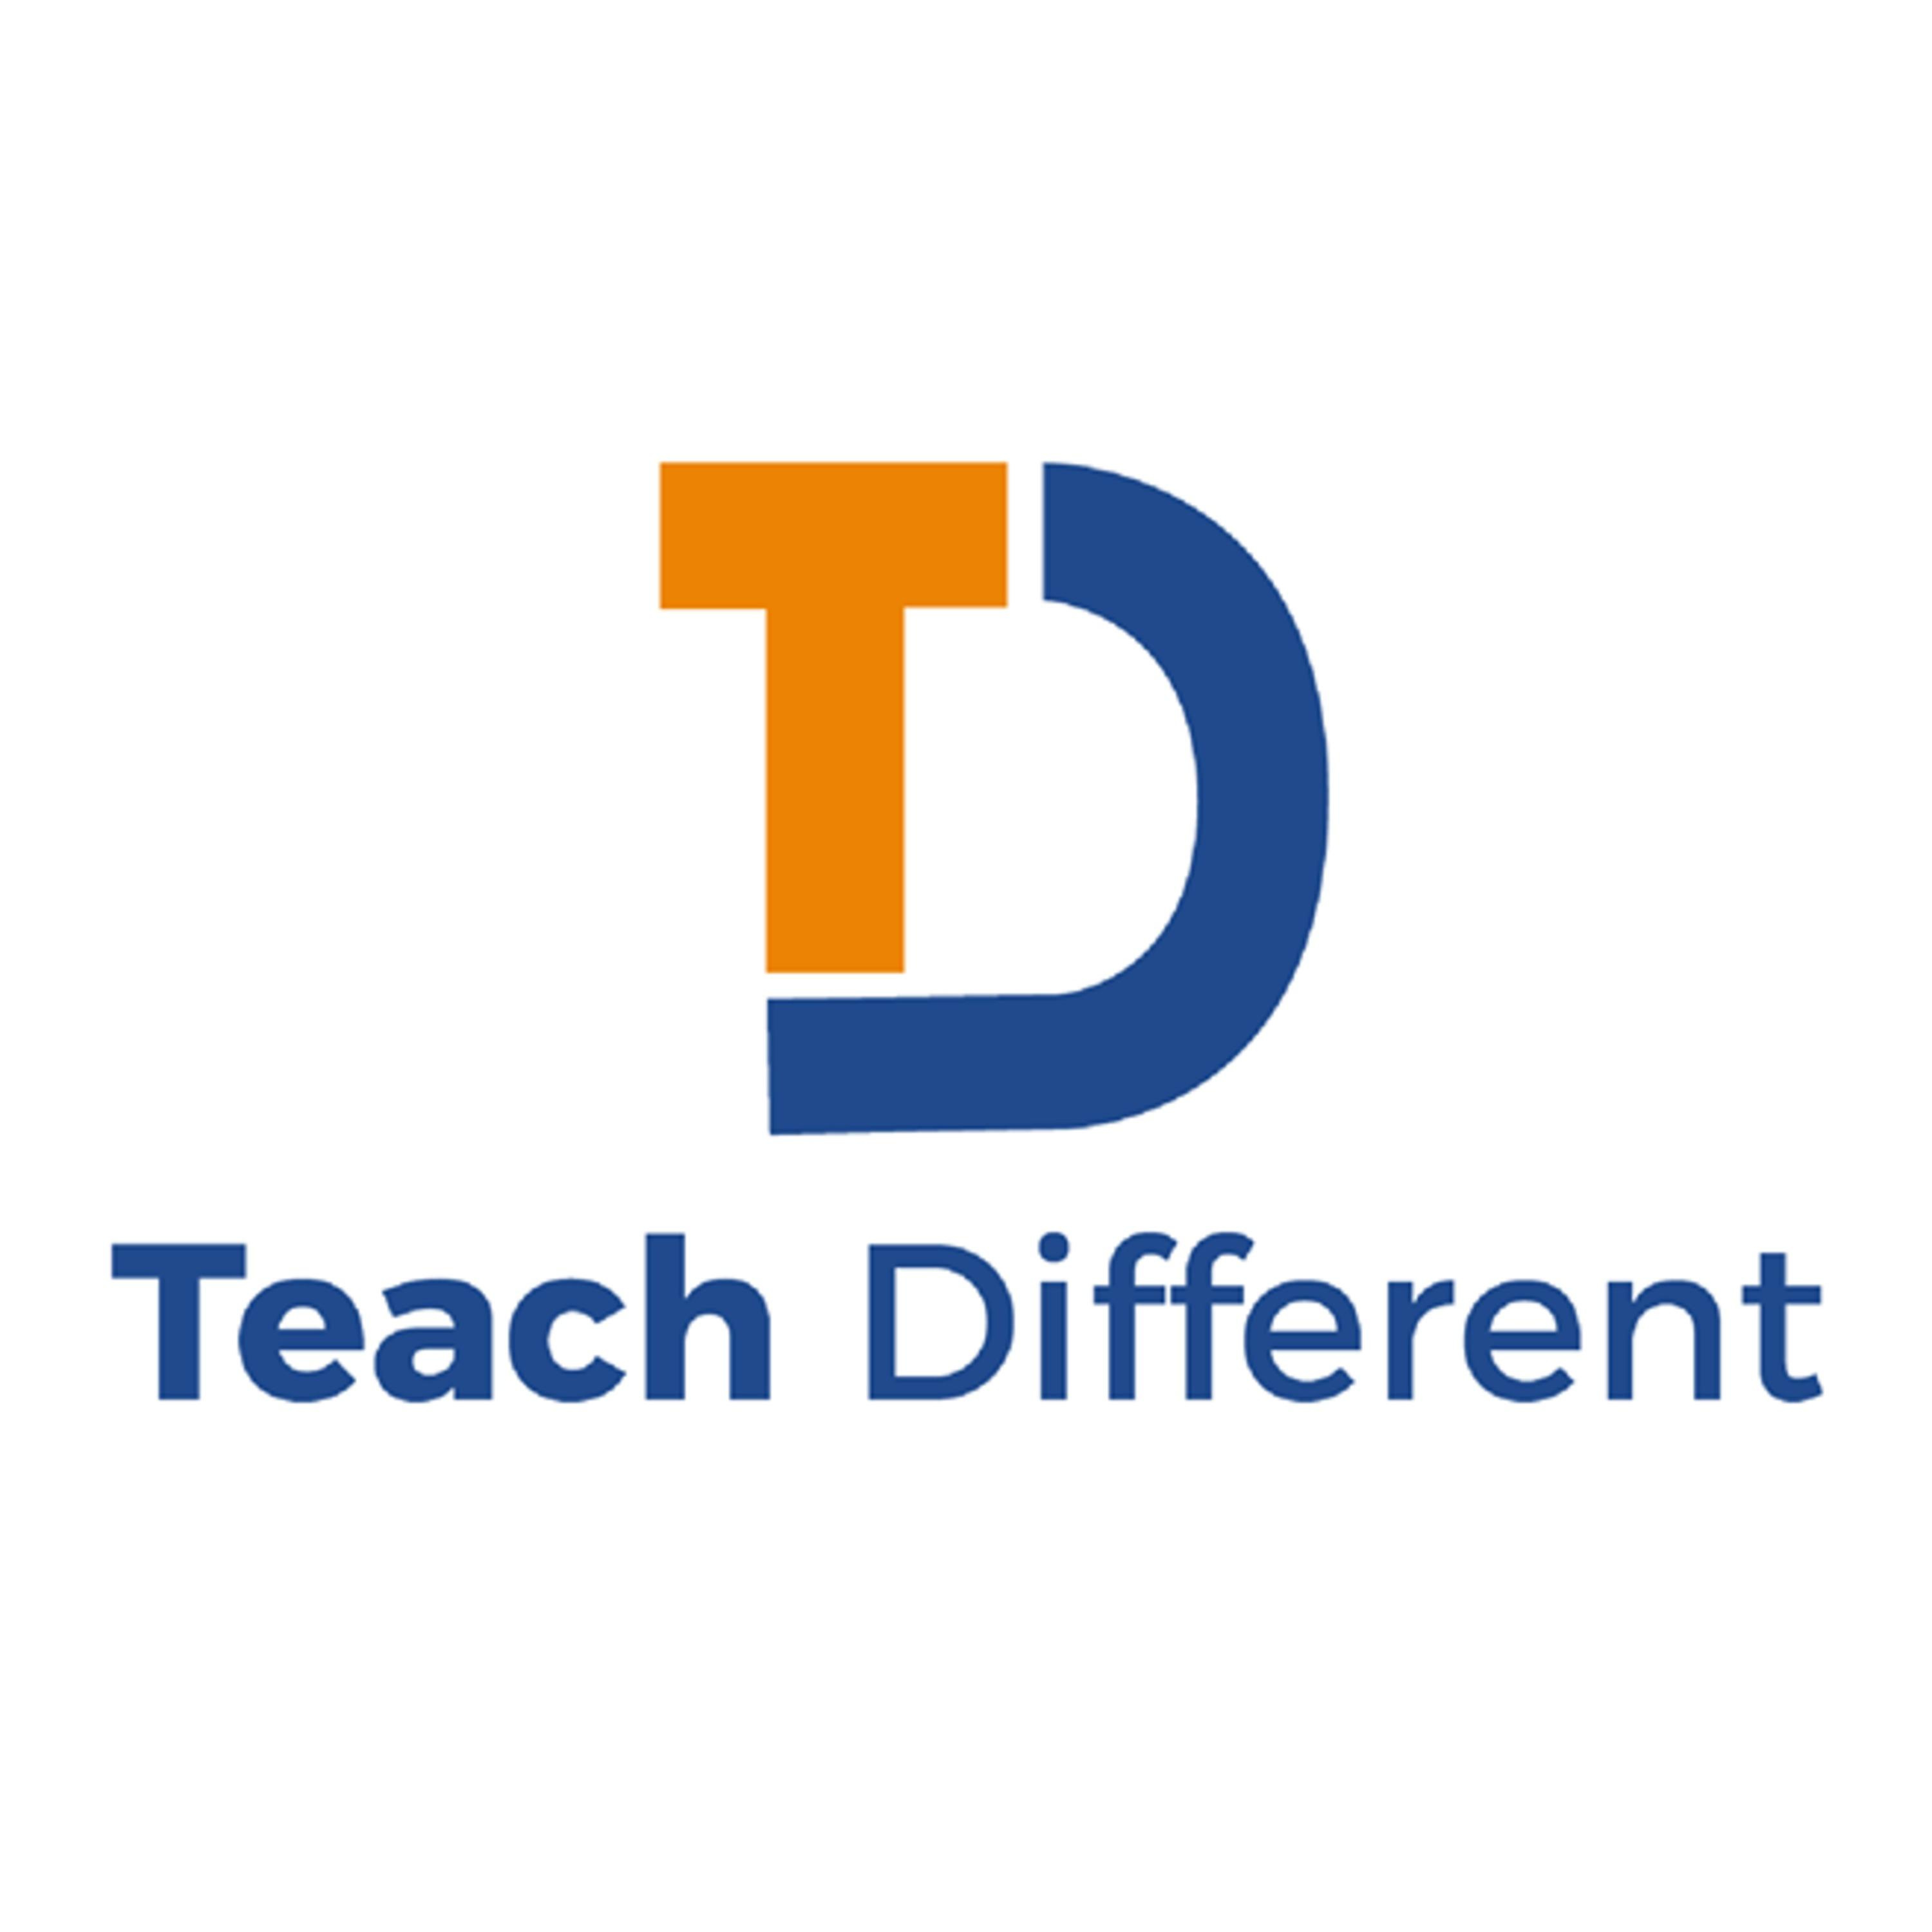 Why Teach Different?